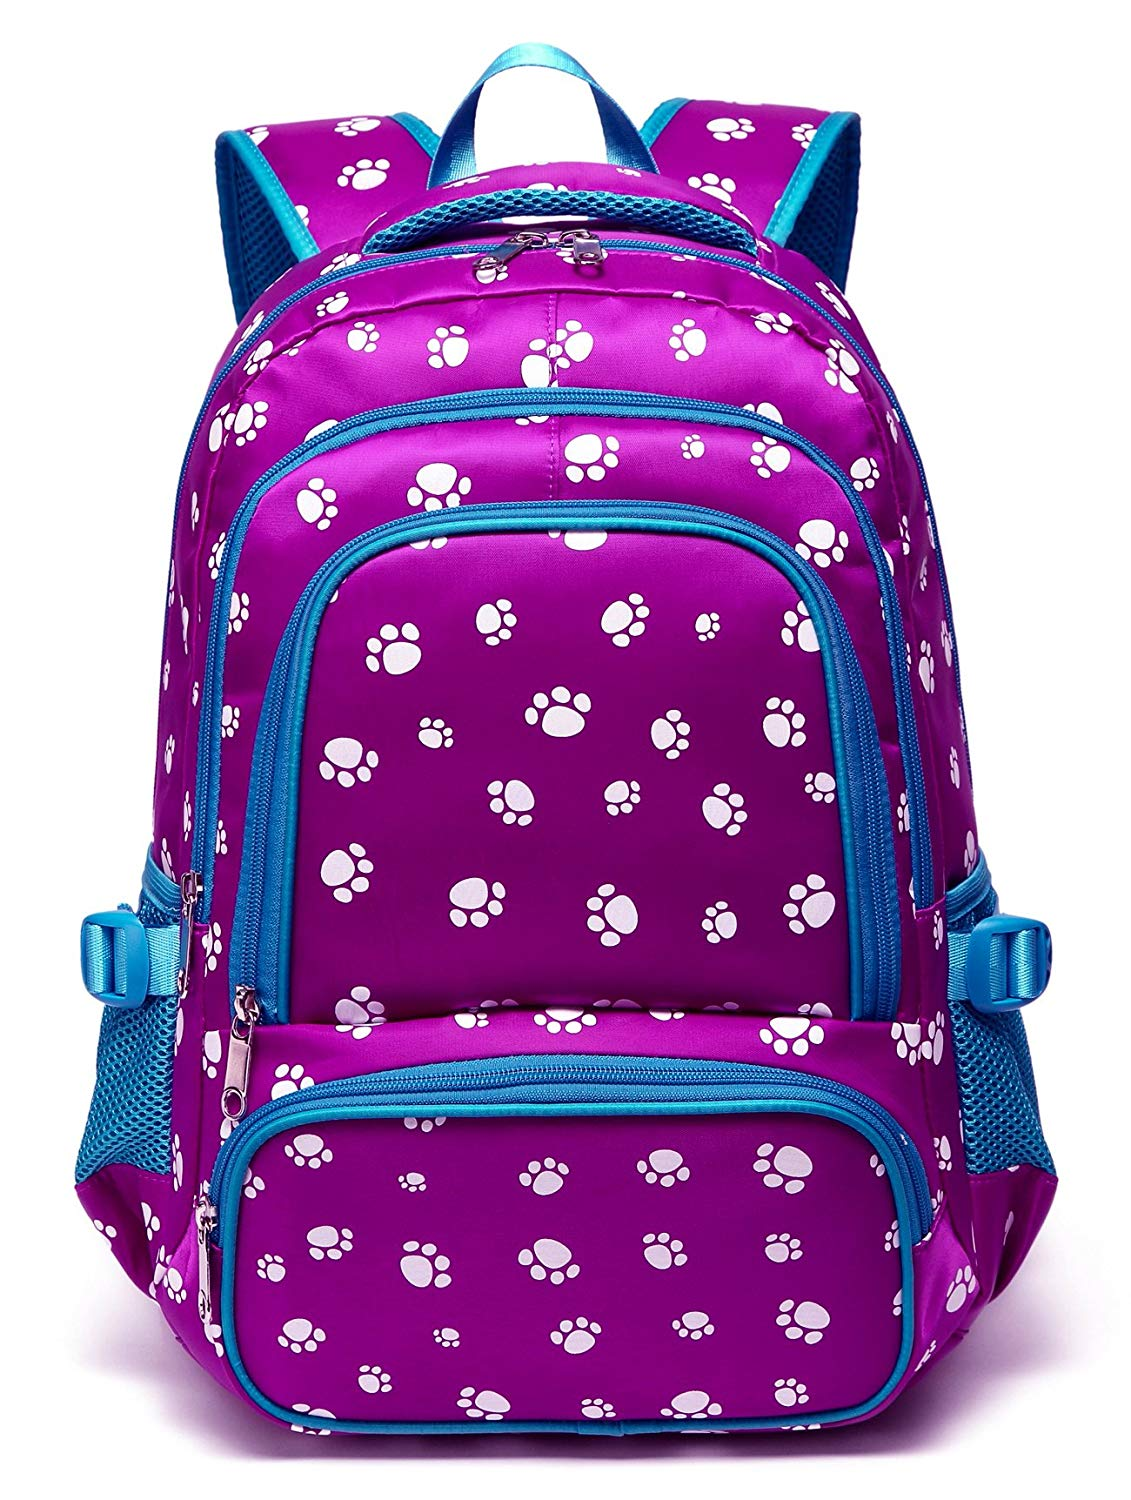 4ff13c3ad5 Get Quotations · Kids School Backpacks for Girls School Bags Bookbags for  Children (Purple Blue)